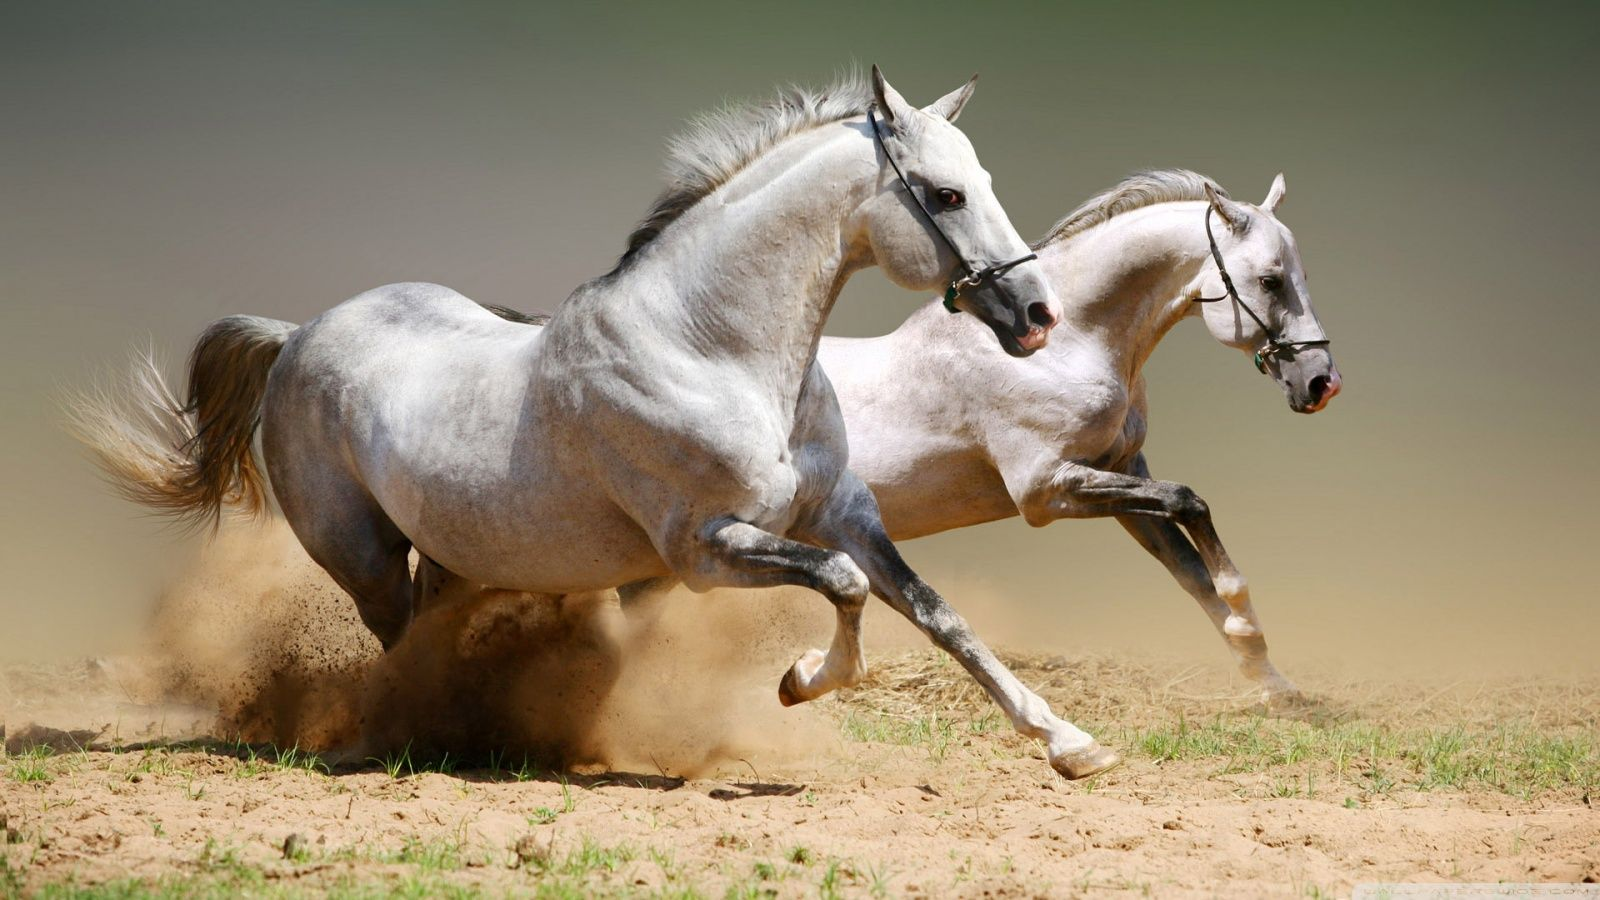 Great Wallpaper Horse Ultra Hd - 25ed334e858862a05052119ca248465b  Pic_605811.jpg